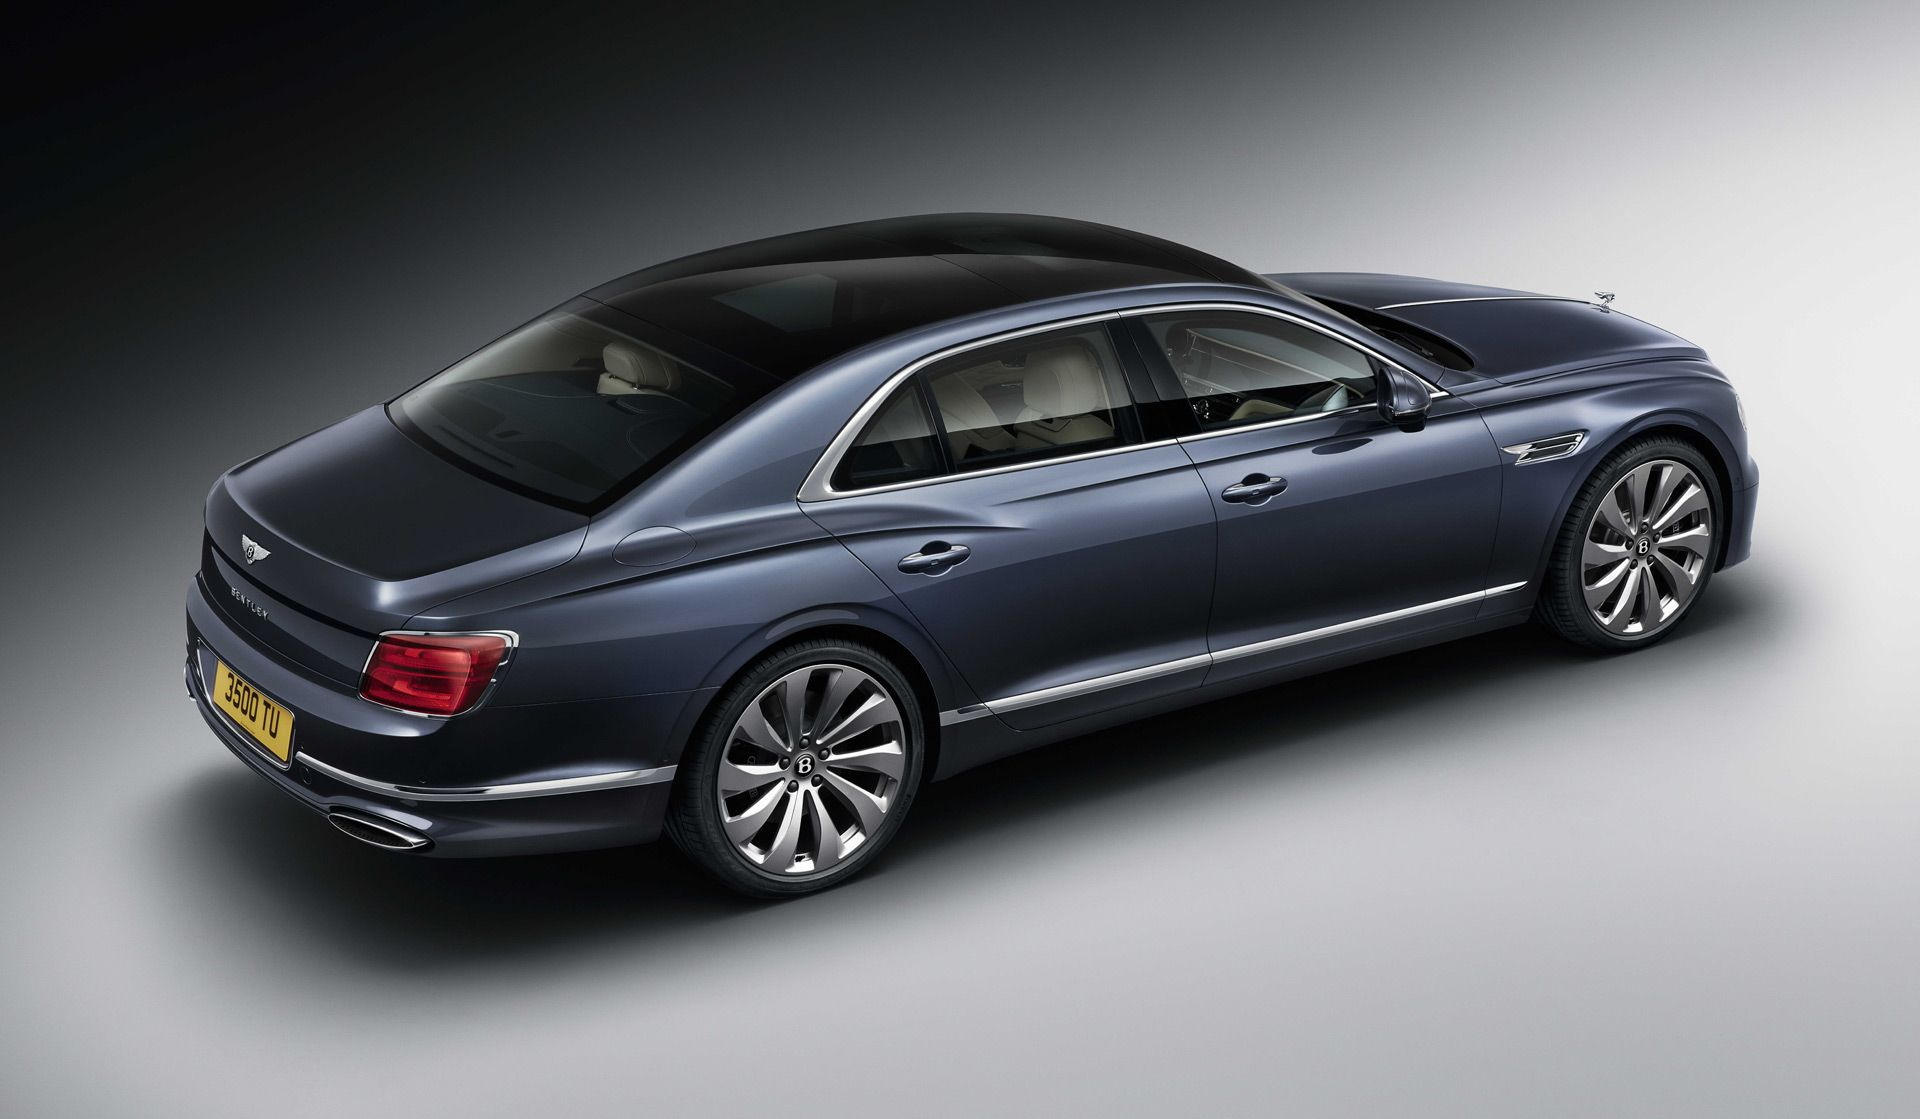 2020 Bentley Flying Spur Is Sporty And Stately In A Single Package Bentley Flying Spur Flying Spur Bentley